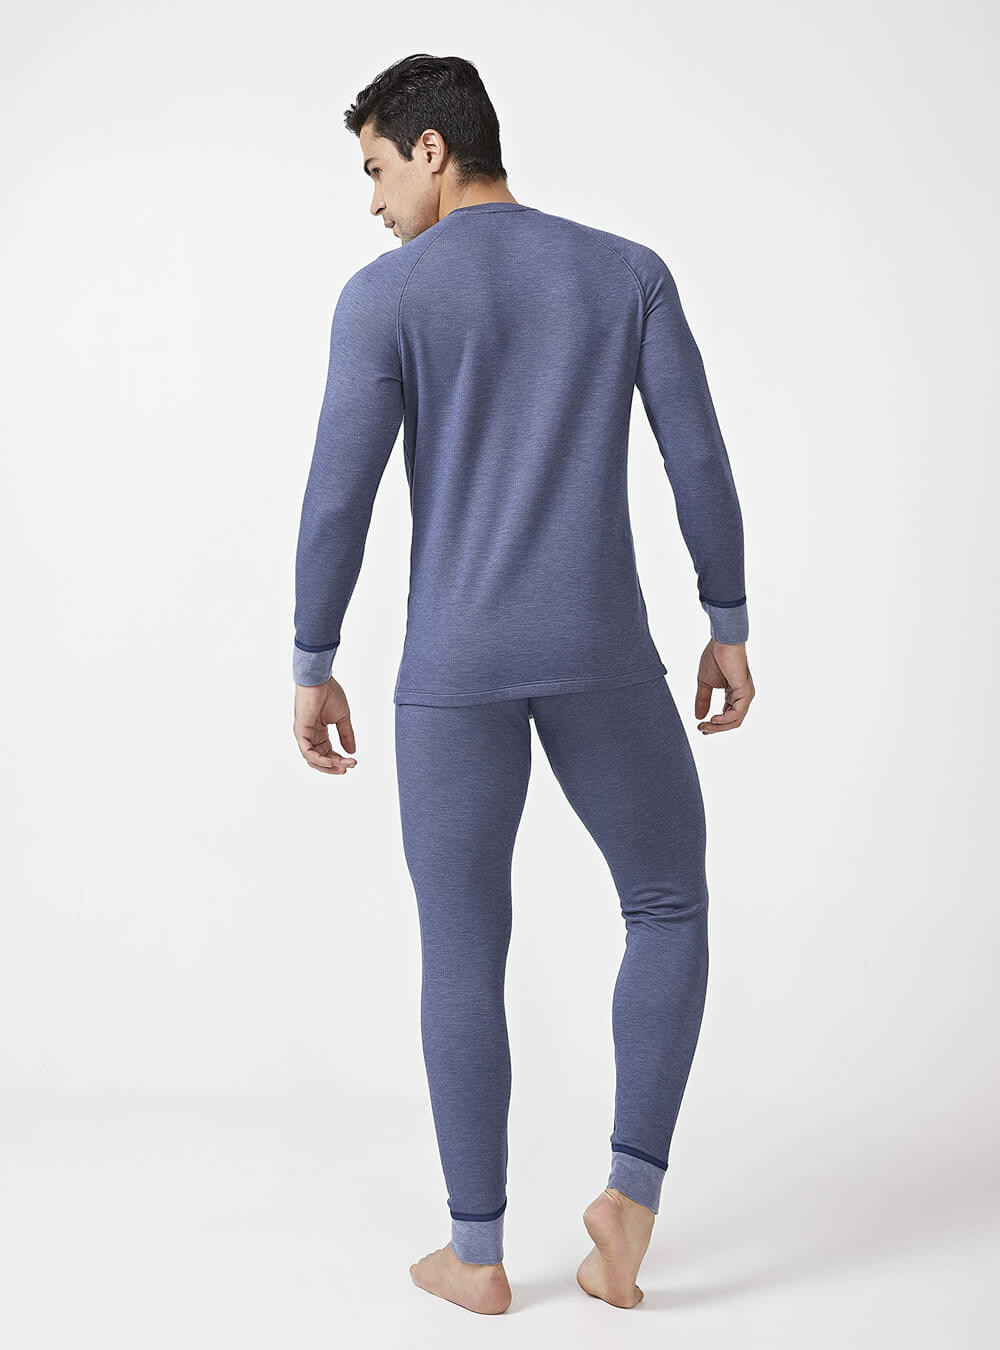 DAVID ARCHY Mens Winter Warm Stretchy Fleece Lined Base Layer Thermal Set Long John with Fly